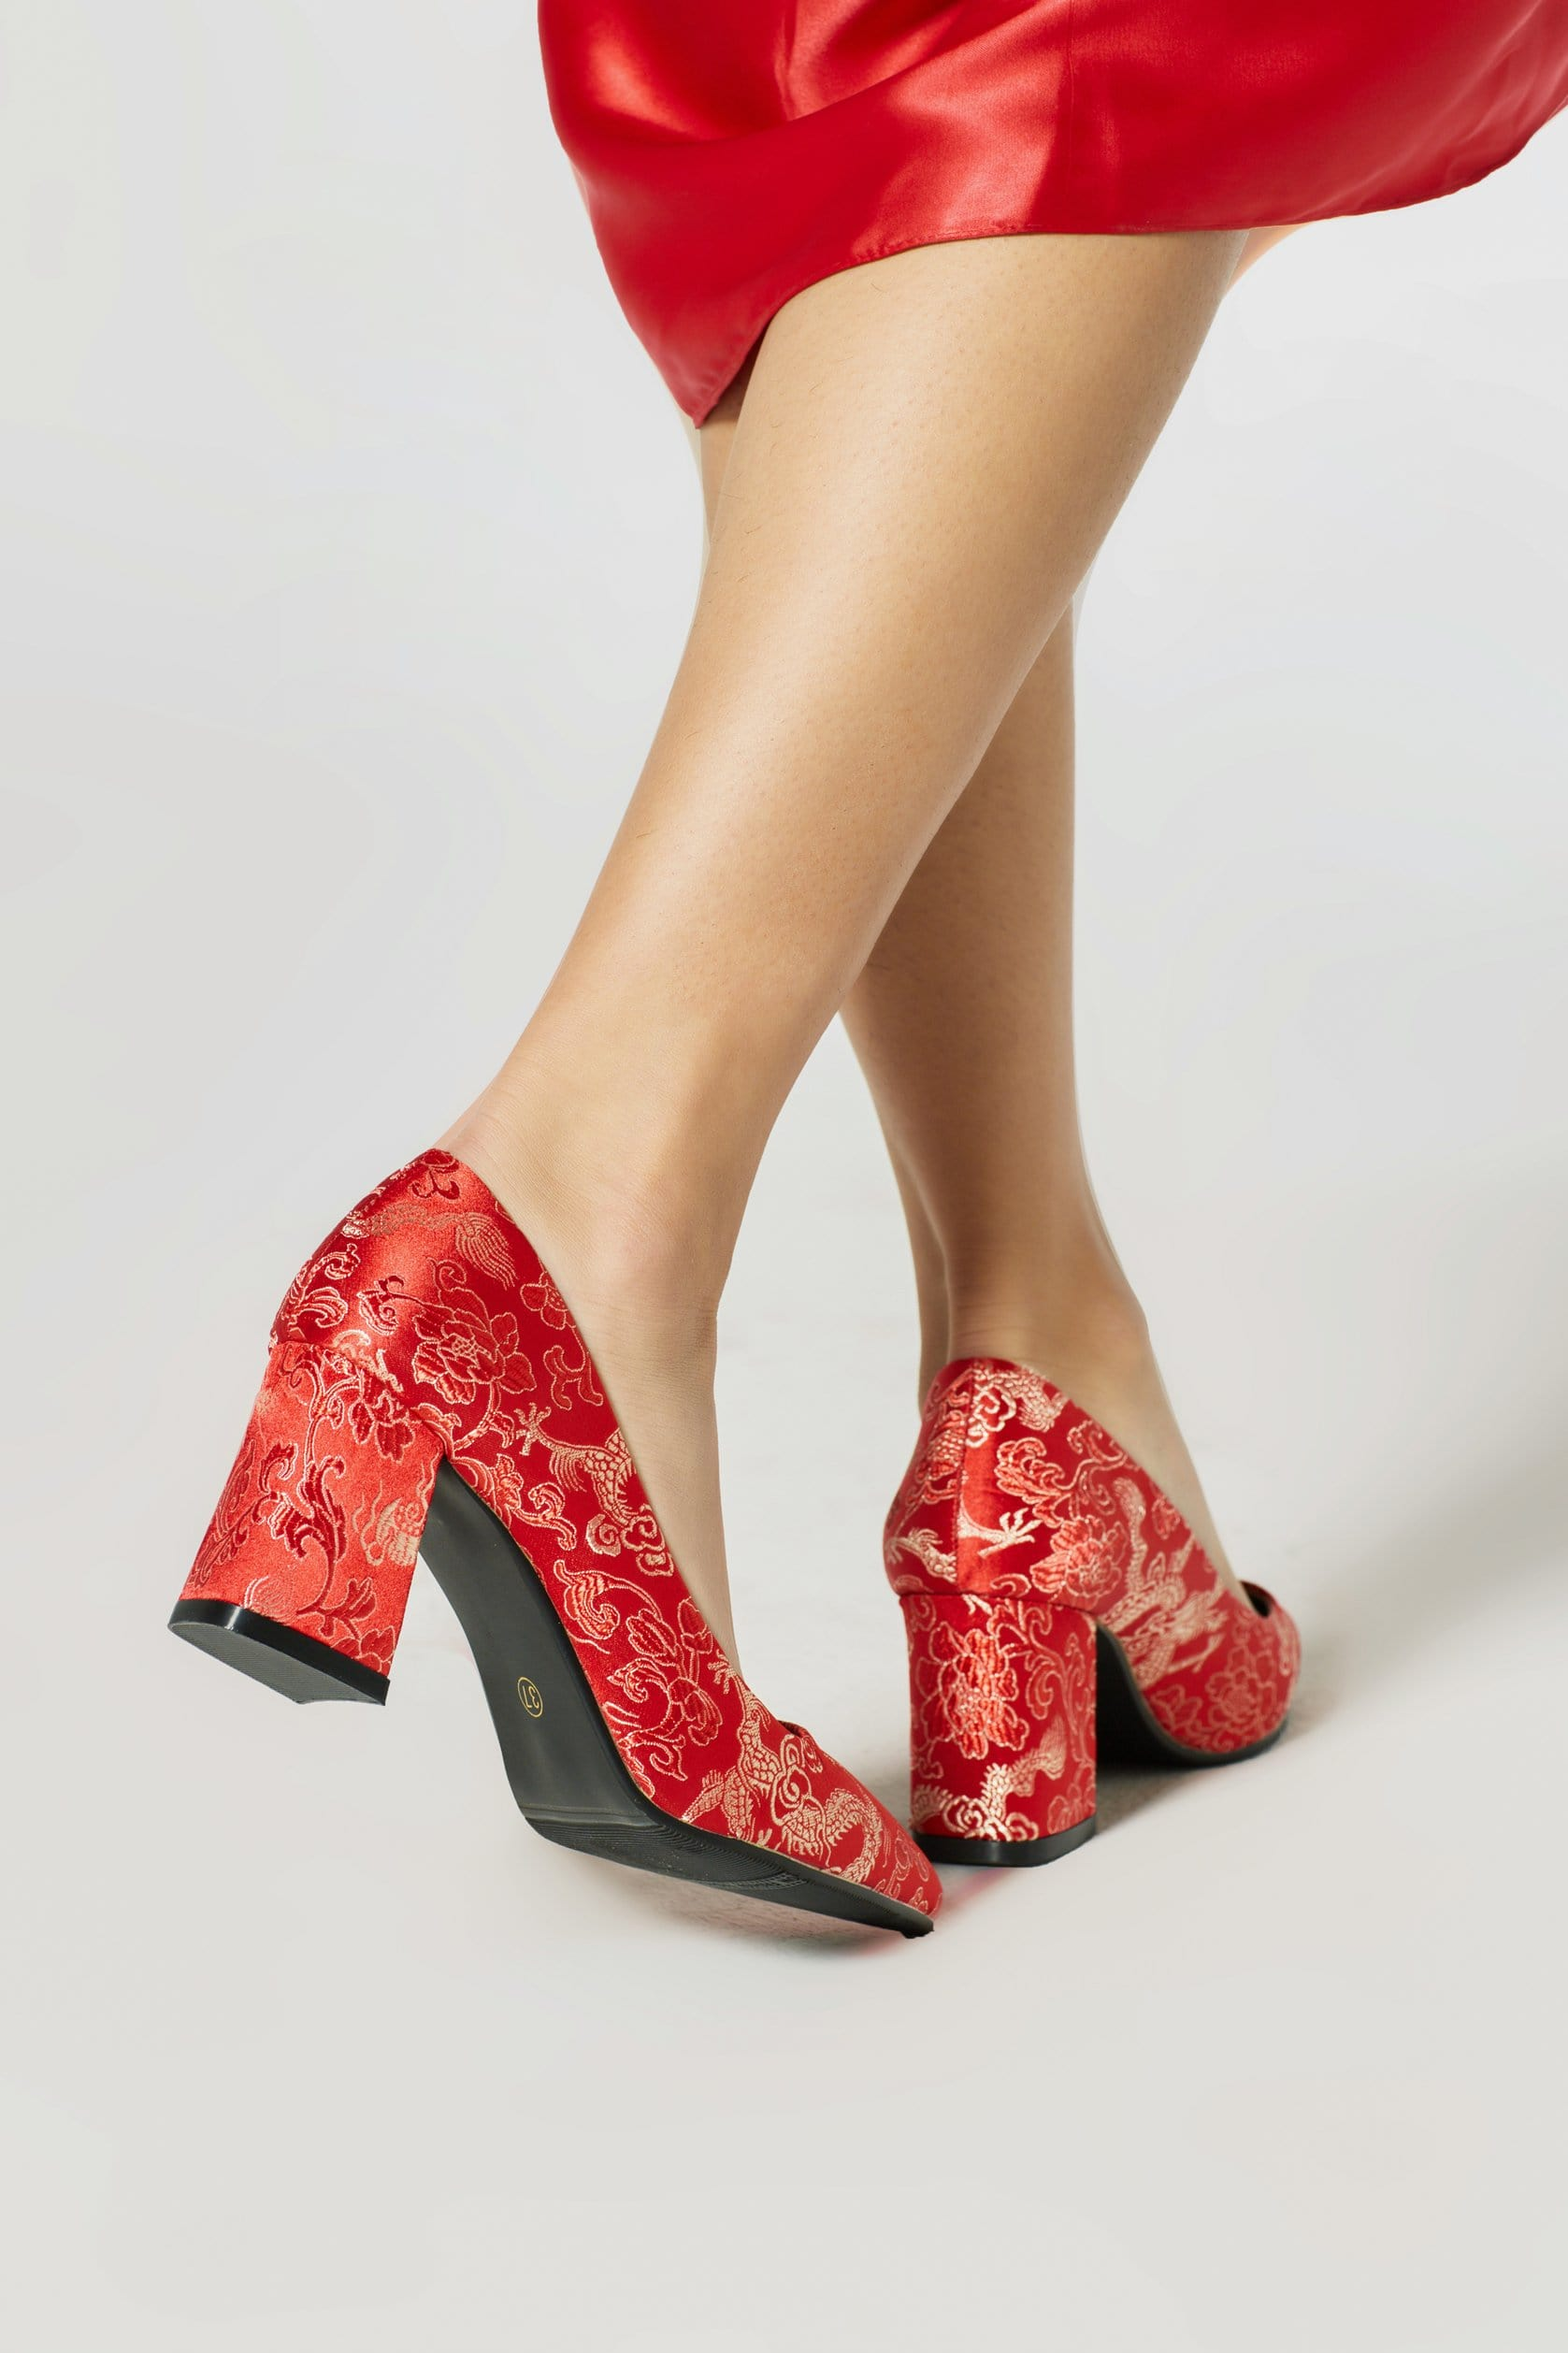 Dragon's Gate Heels - Accessories - East Meets Dress